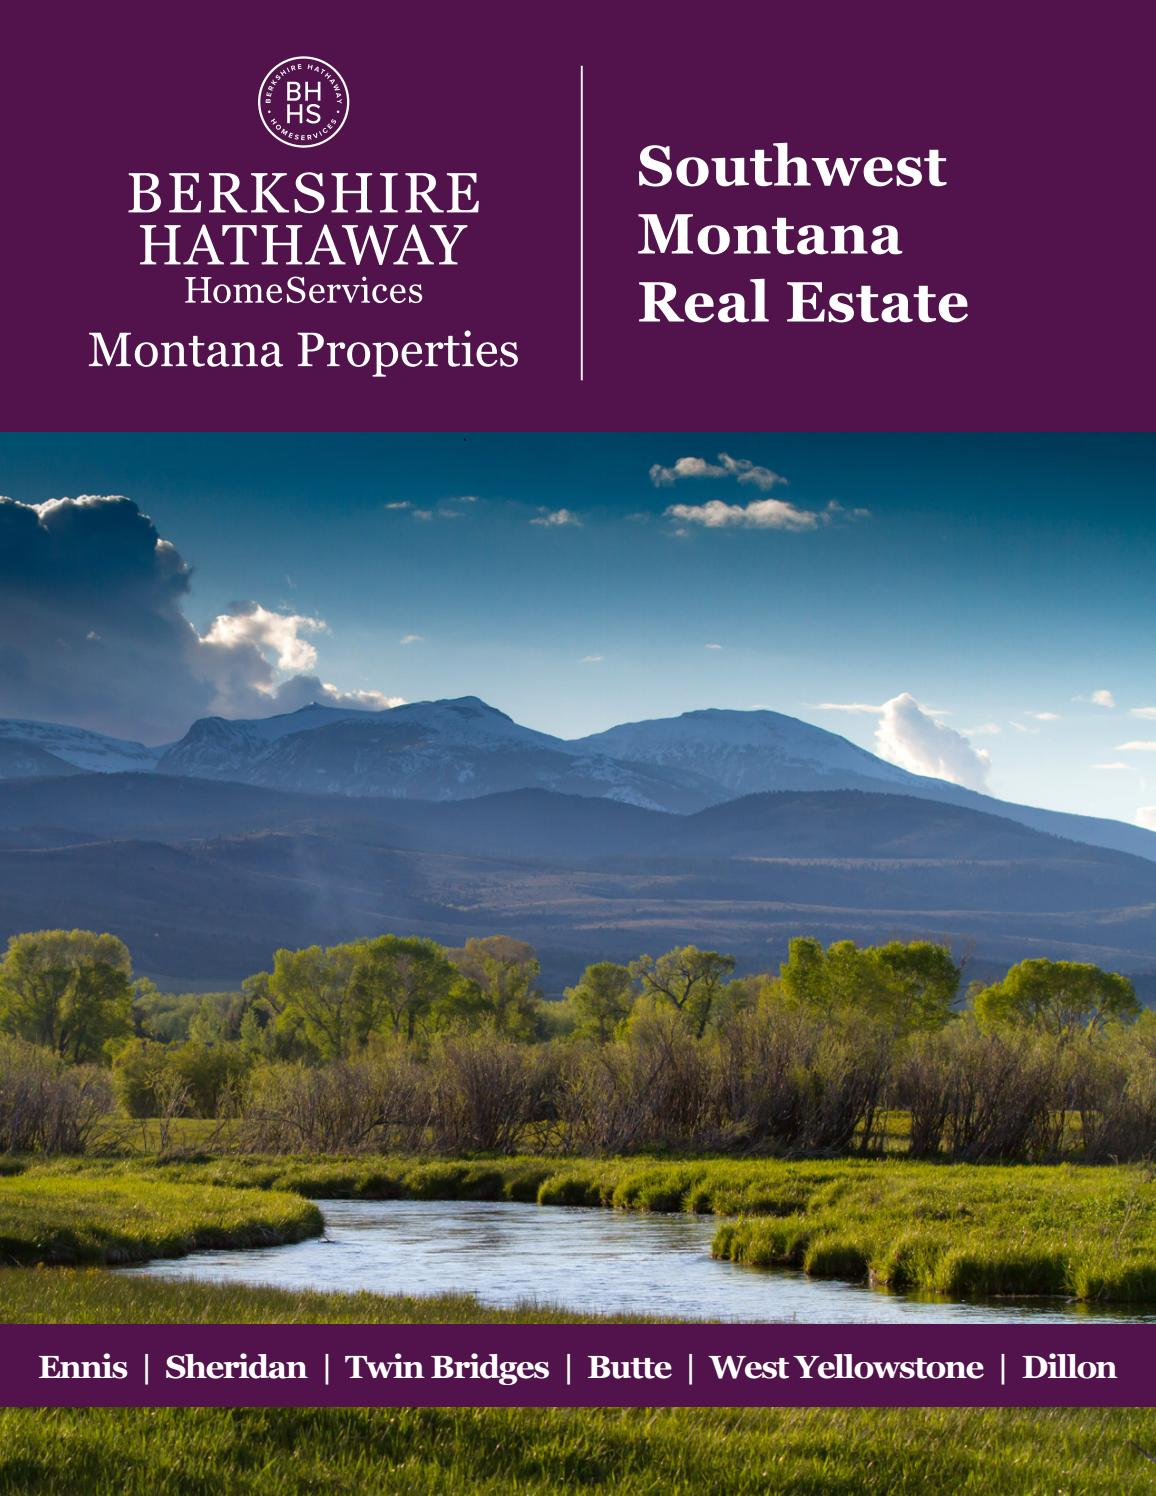 2019 Summer Southwest Montana Real Estate By Berkshire Hathaway Homeservices Montana Properties